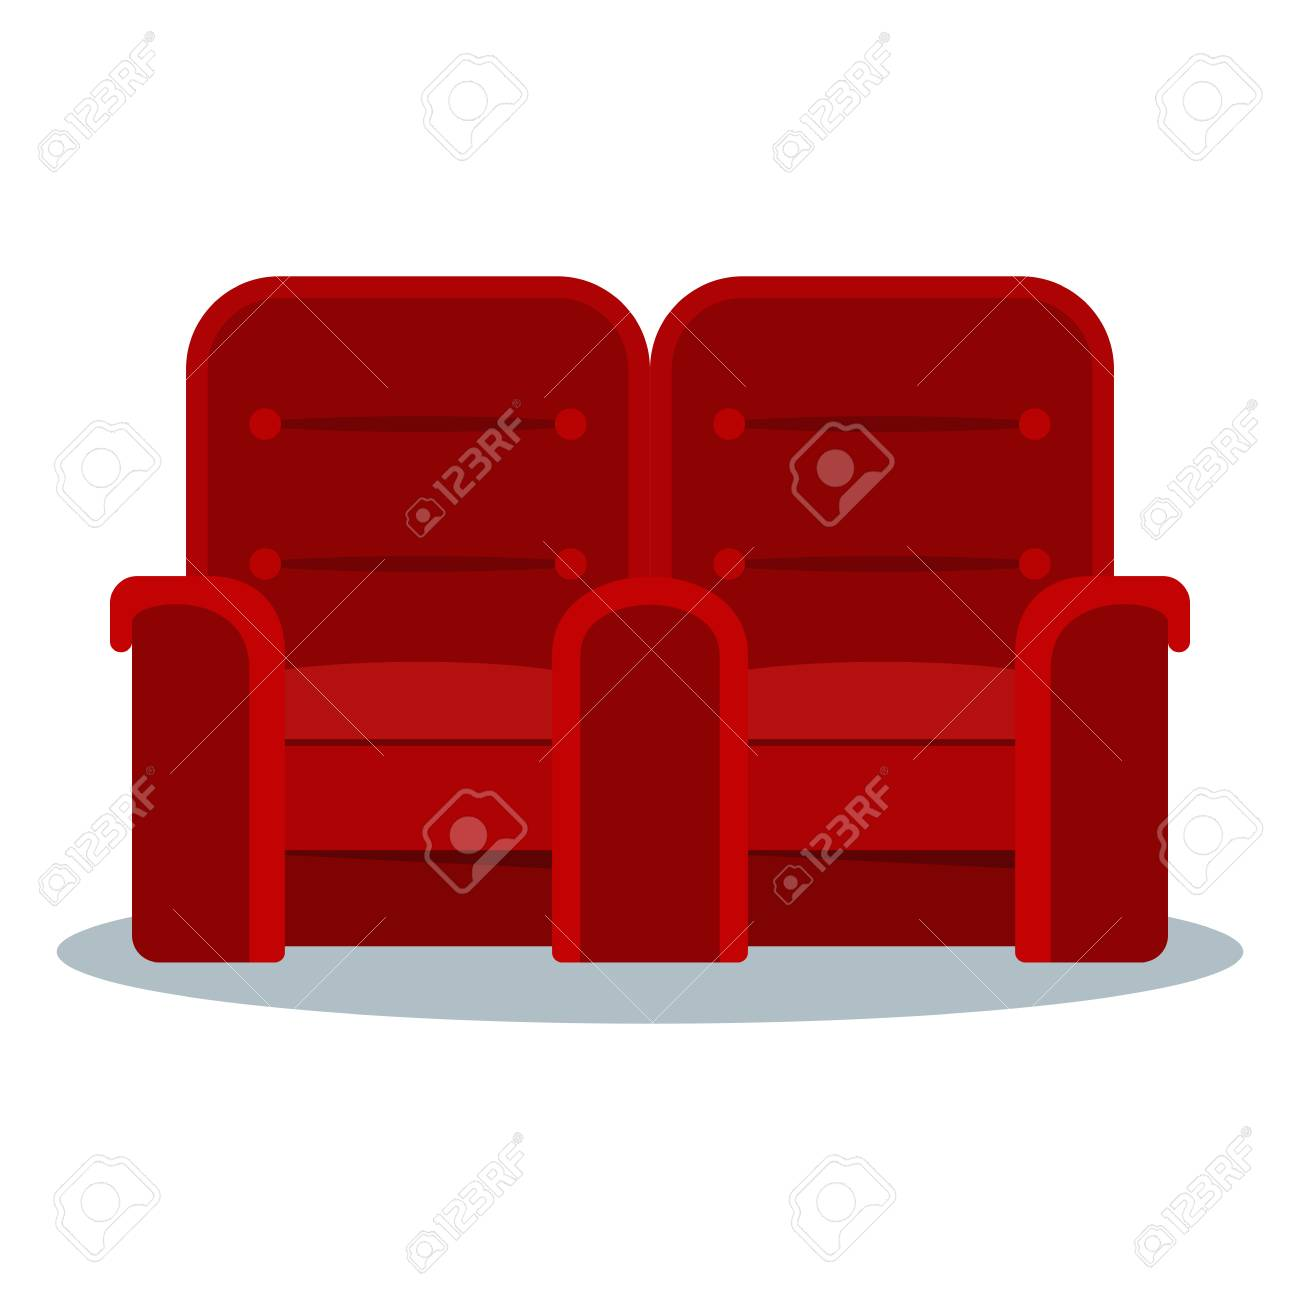 Auditorium And Seats In A Movie Theater Flat Vector Cartoon Royalty Free Cliparts Vectors And Stock Illustration Image 95994045